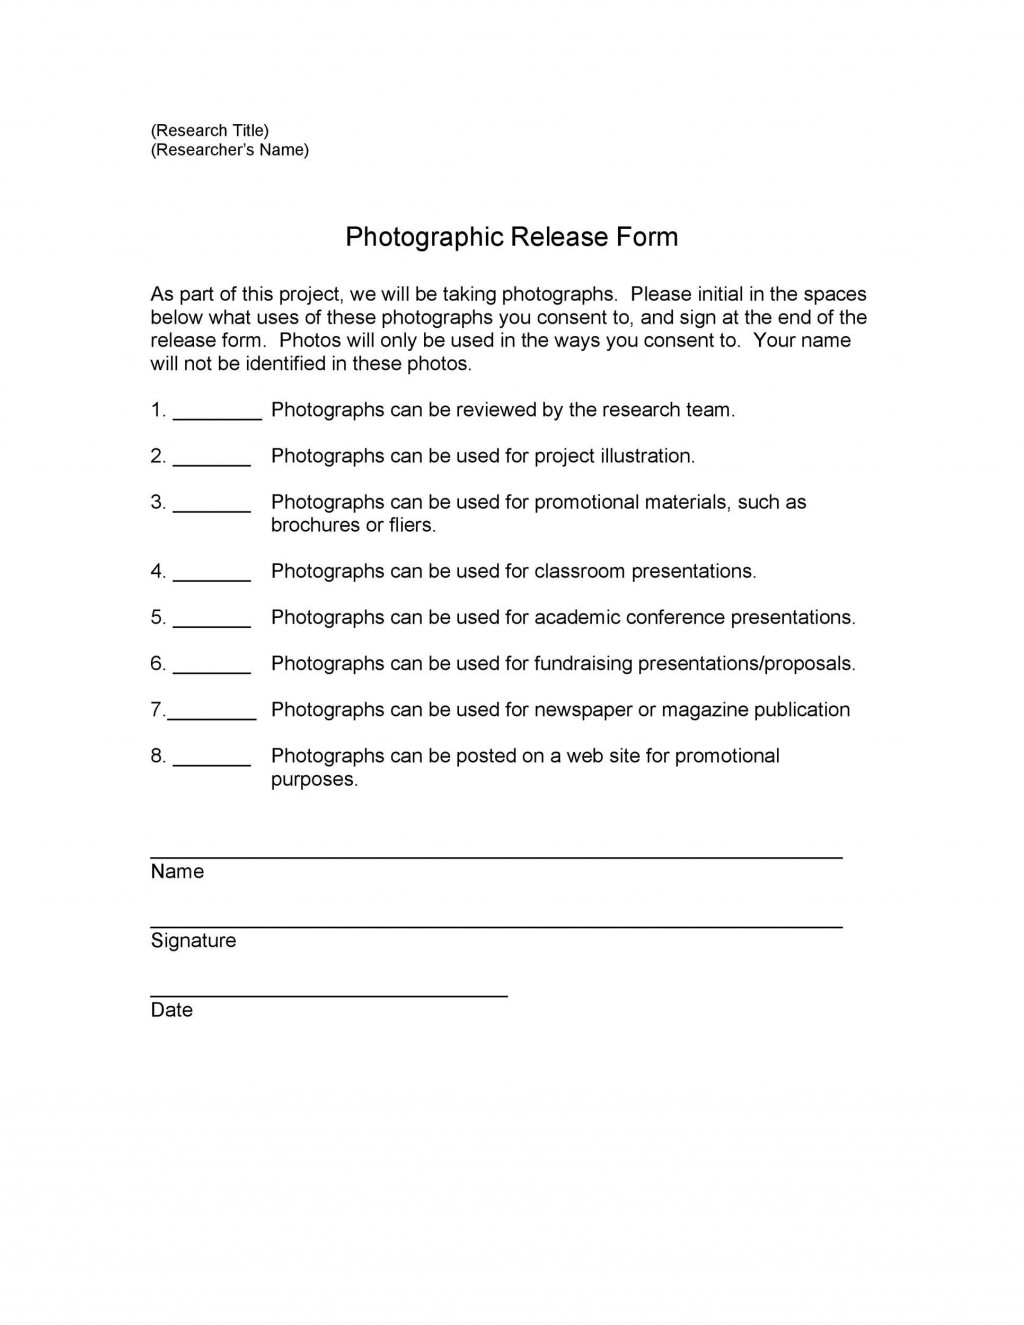 007 Simple Photography Release Form Template Highest Clarity  Image Australia CanadaLarge